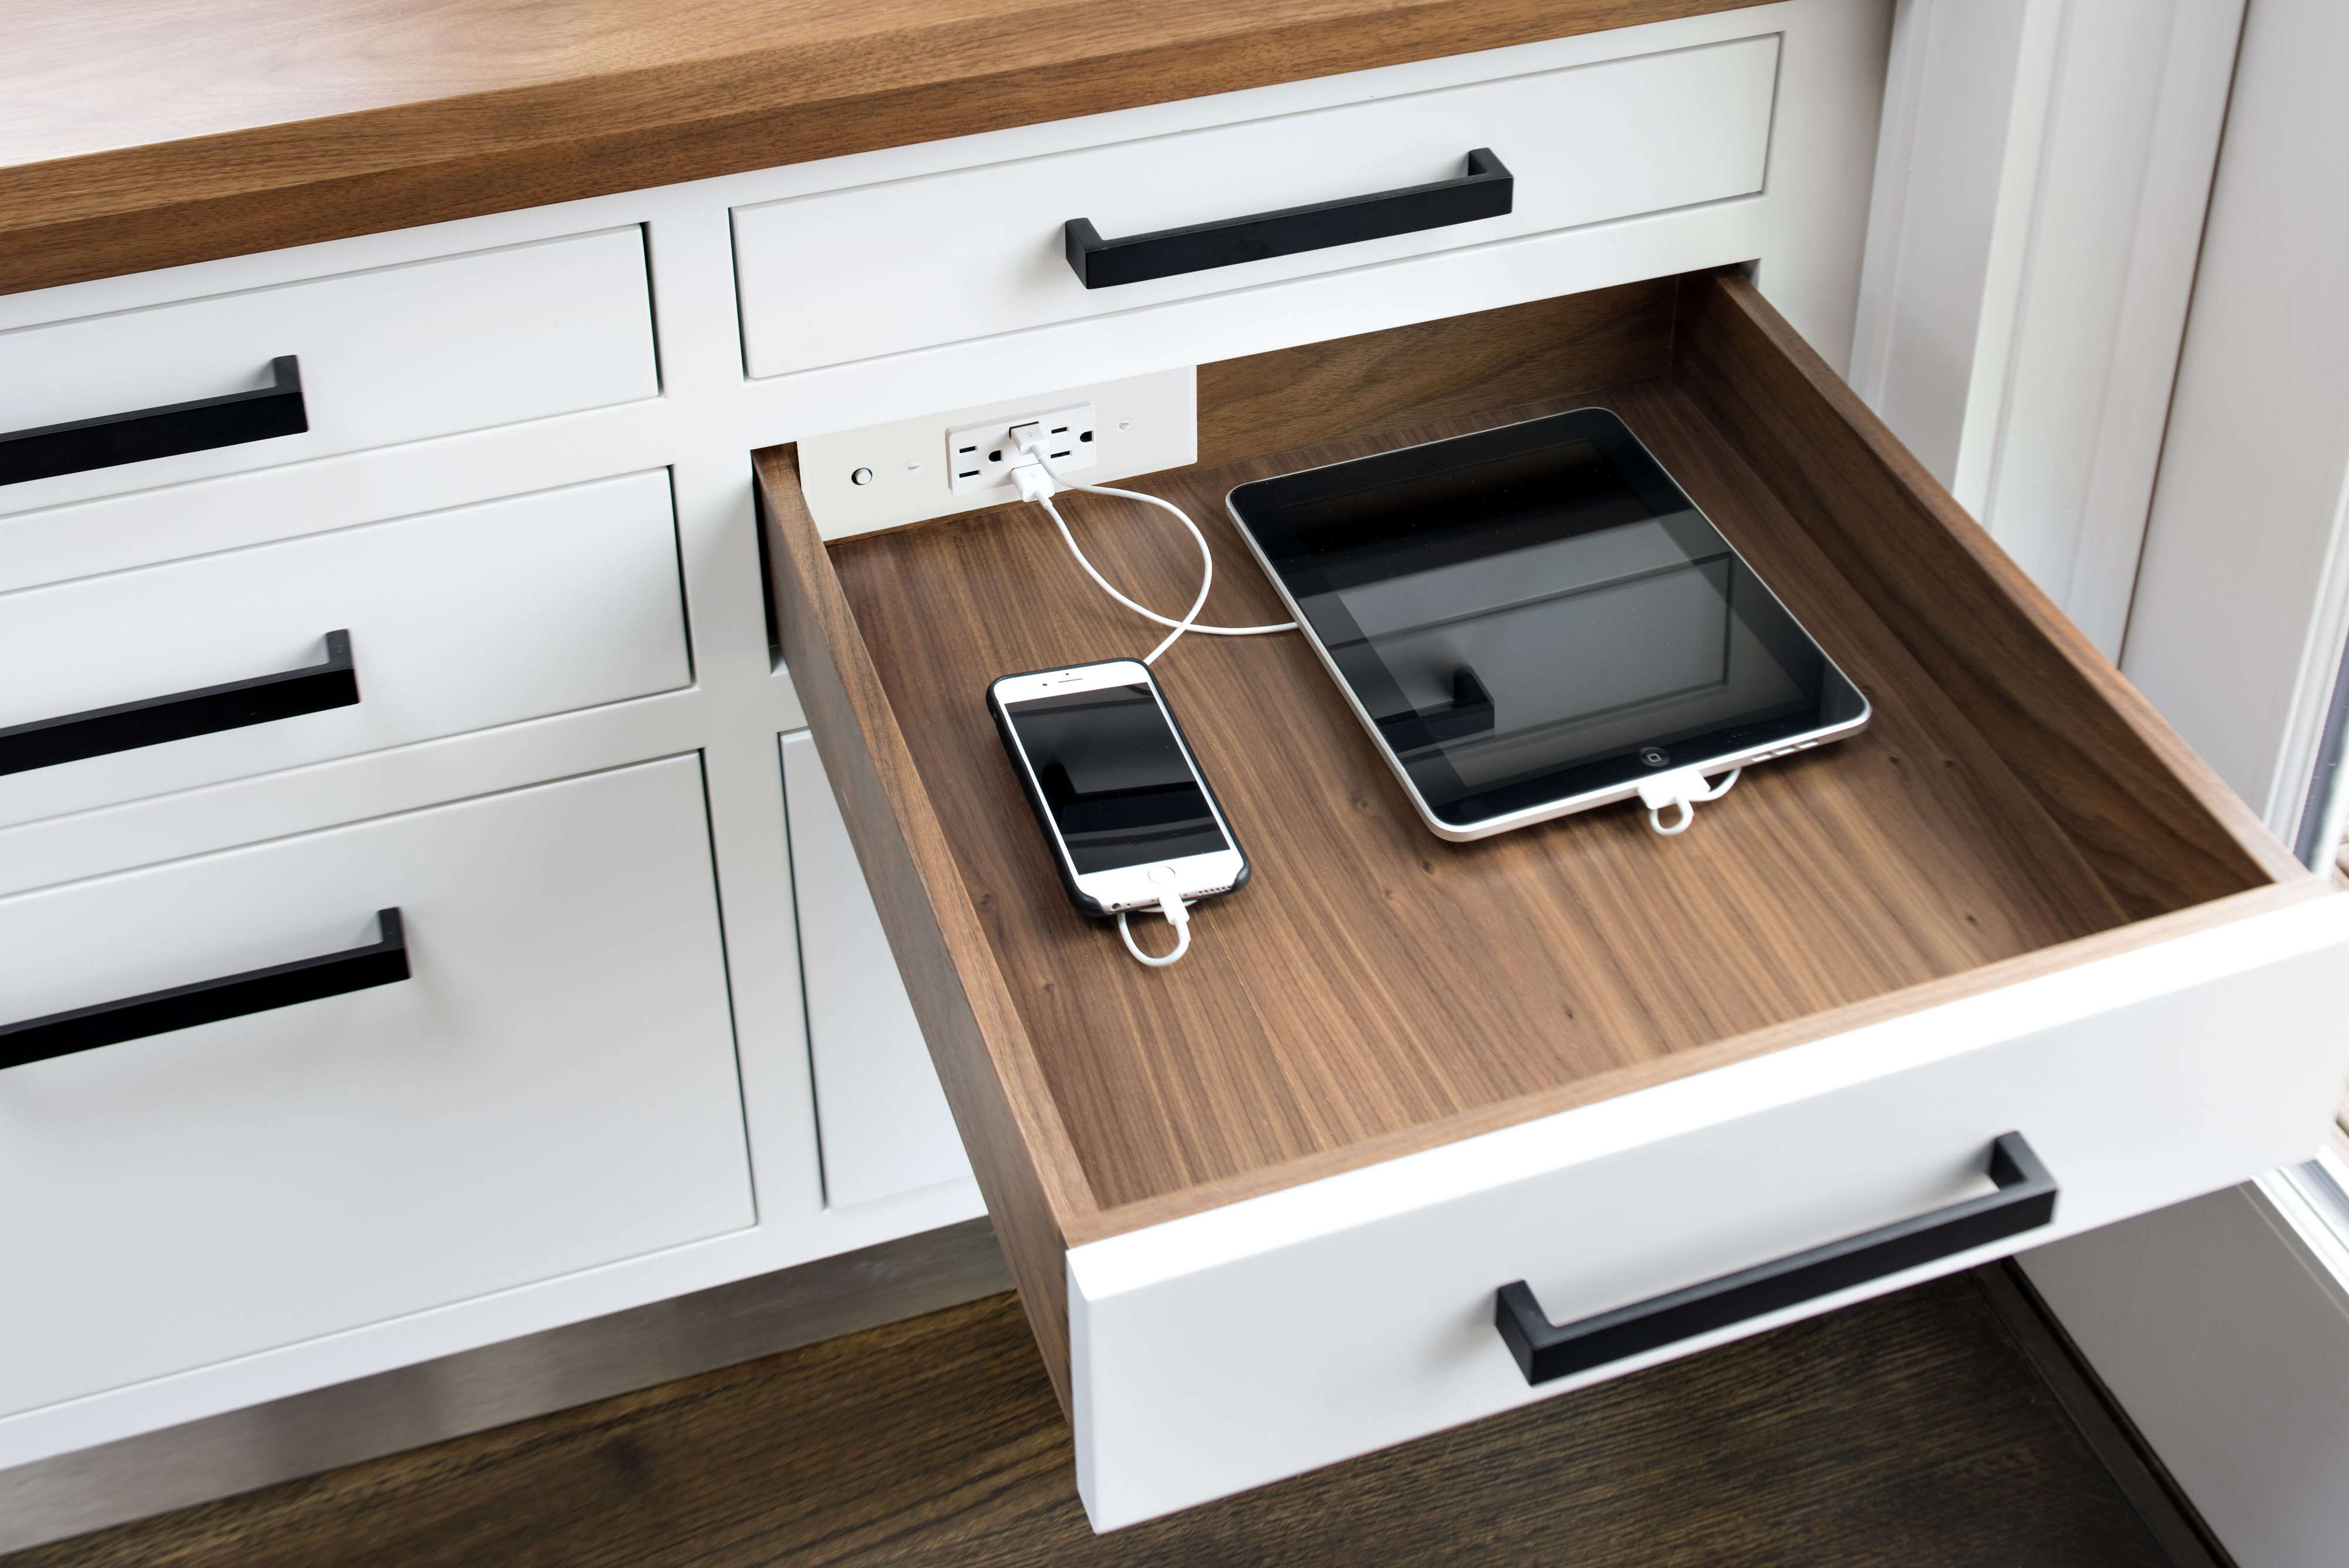 Clutter Free Organized Spaces With In Drawer Electrical